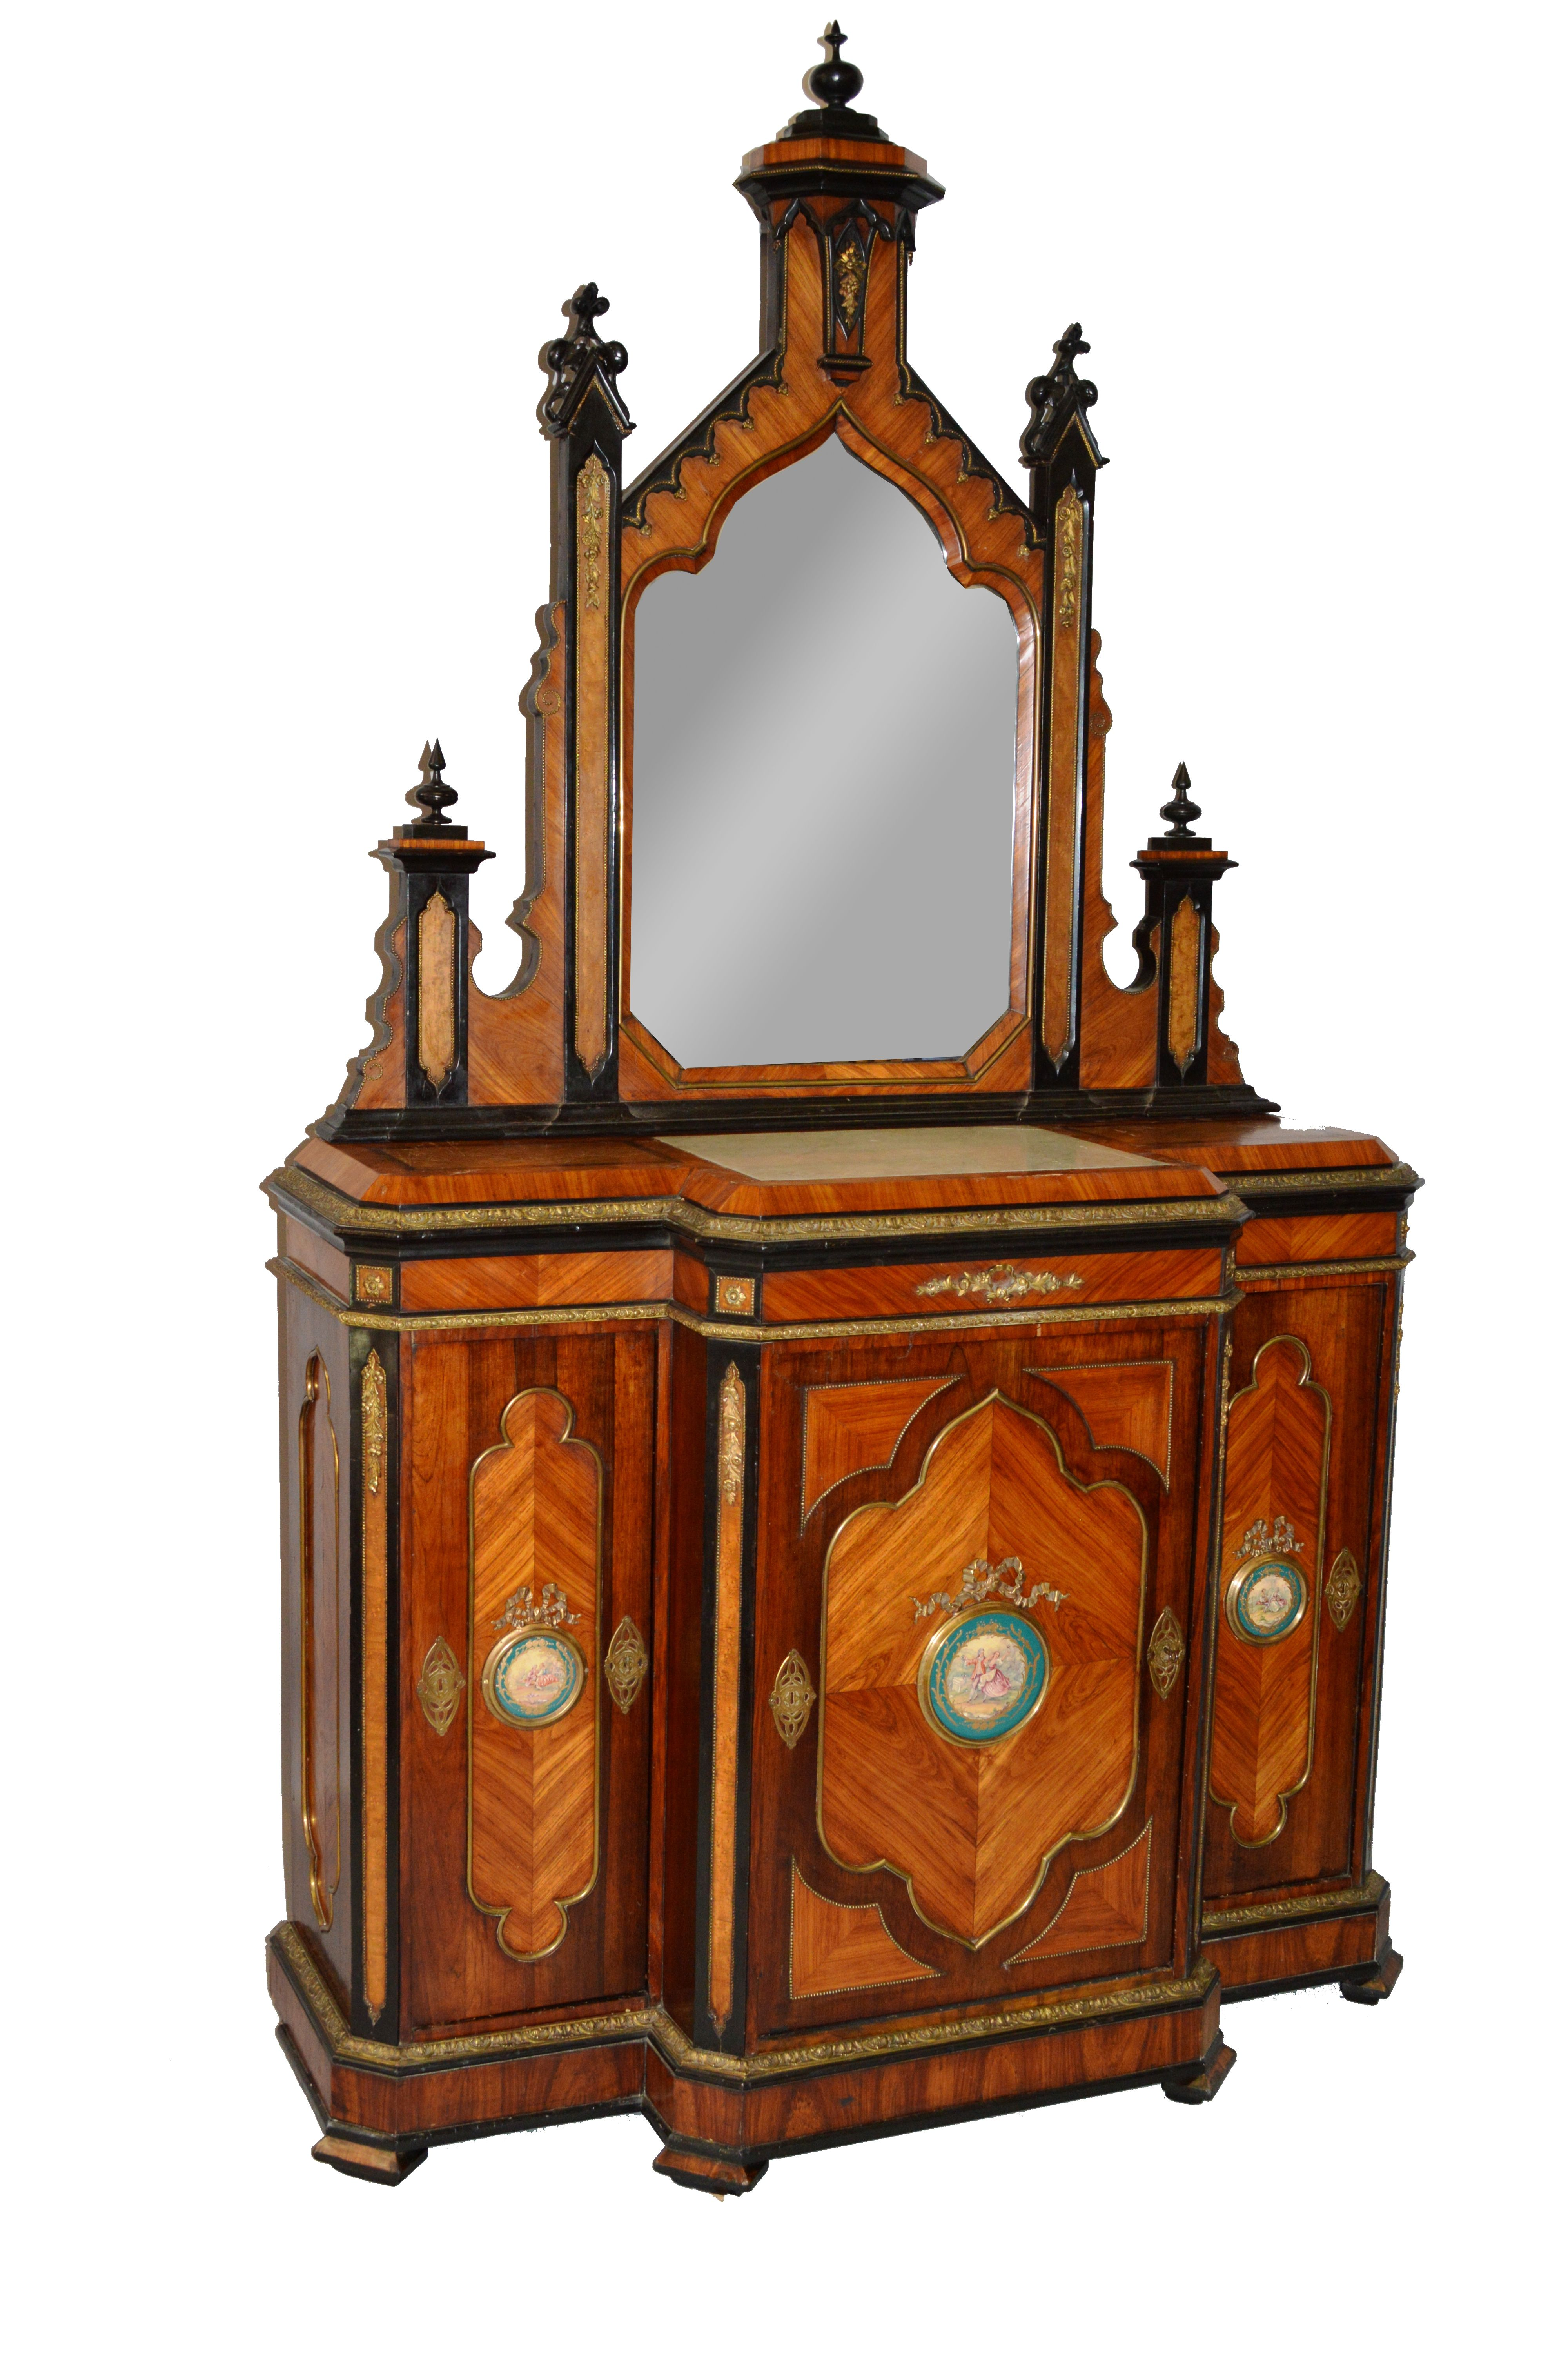 A good 19th century kingwood gothic design cabinet, attributed to Lamb of Manchester. Est. £3,000 – £4,000.